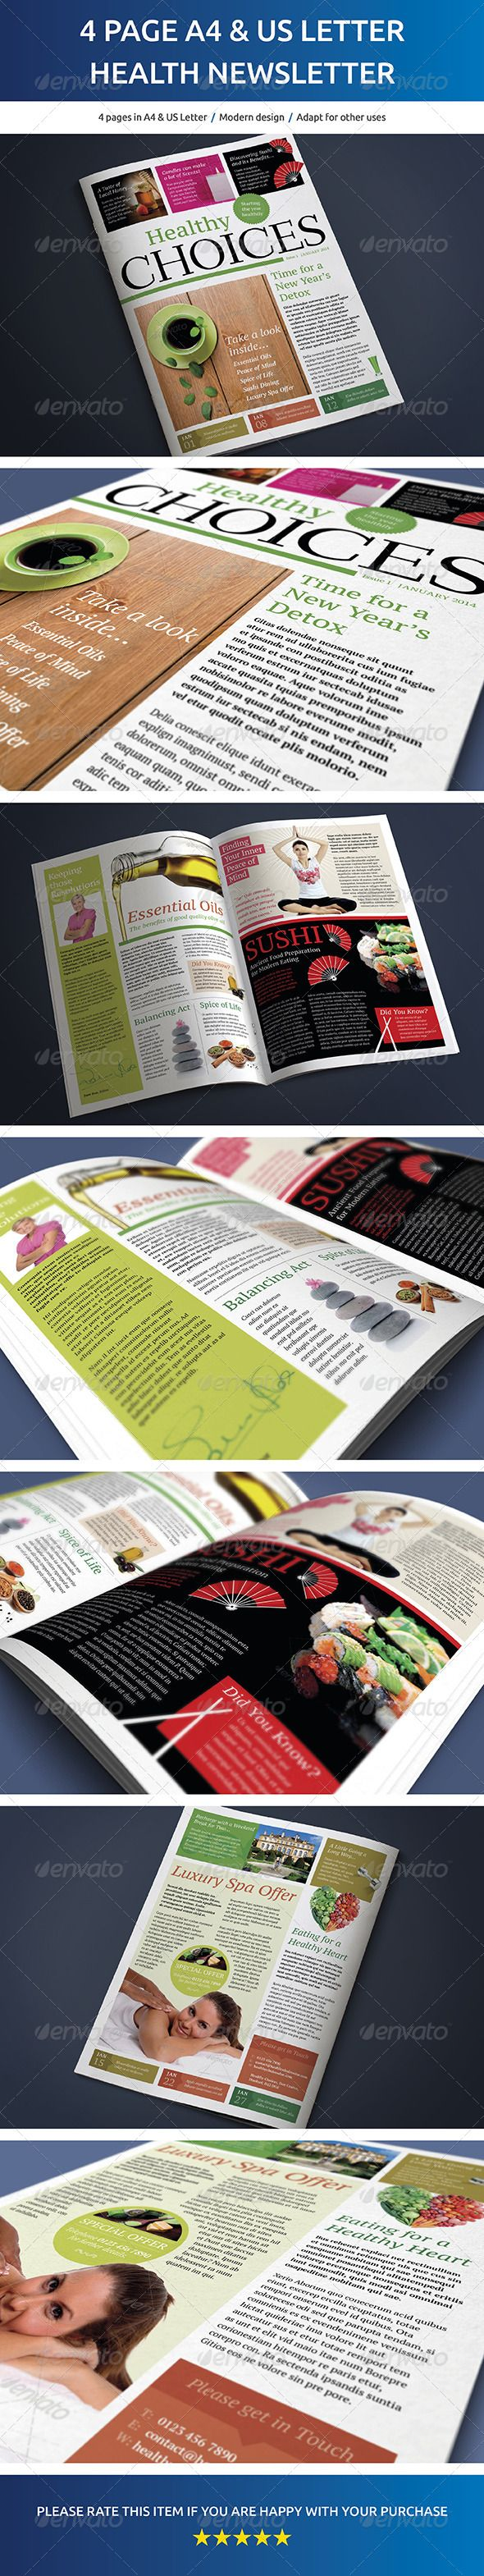 4 Page A4 and US Letter Healthy Living Newsletter - Newsletters Print Templates Download here : https://graphicriver.net/item/4-page-a4-and-us-letter-healthy-living-newsletter/6839771?s_rank=276&ref=Al-fatih